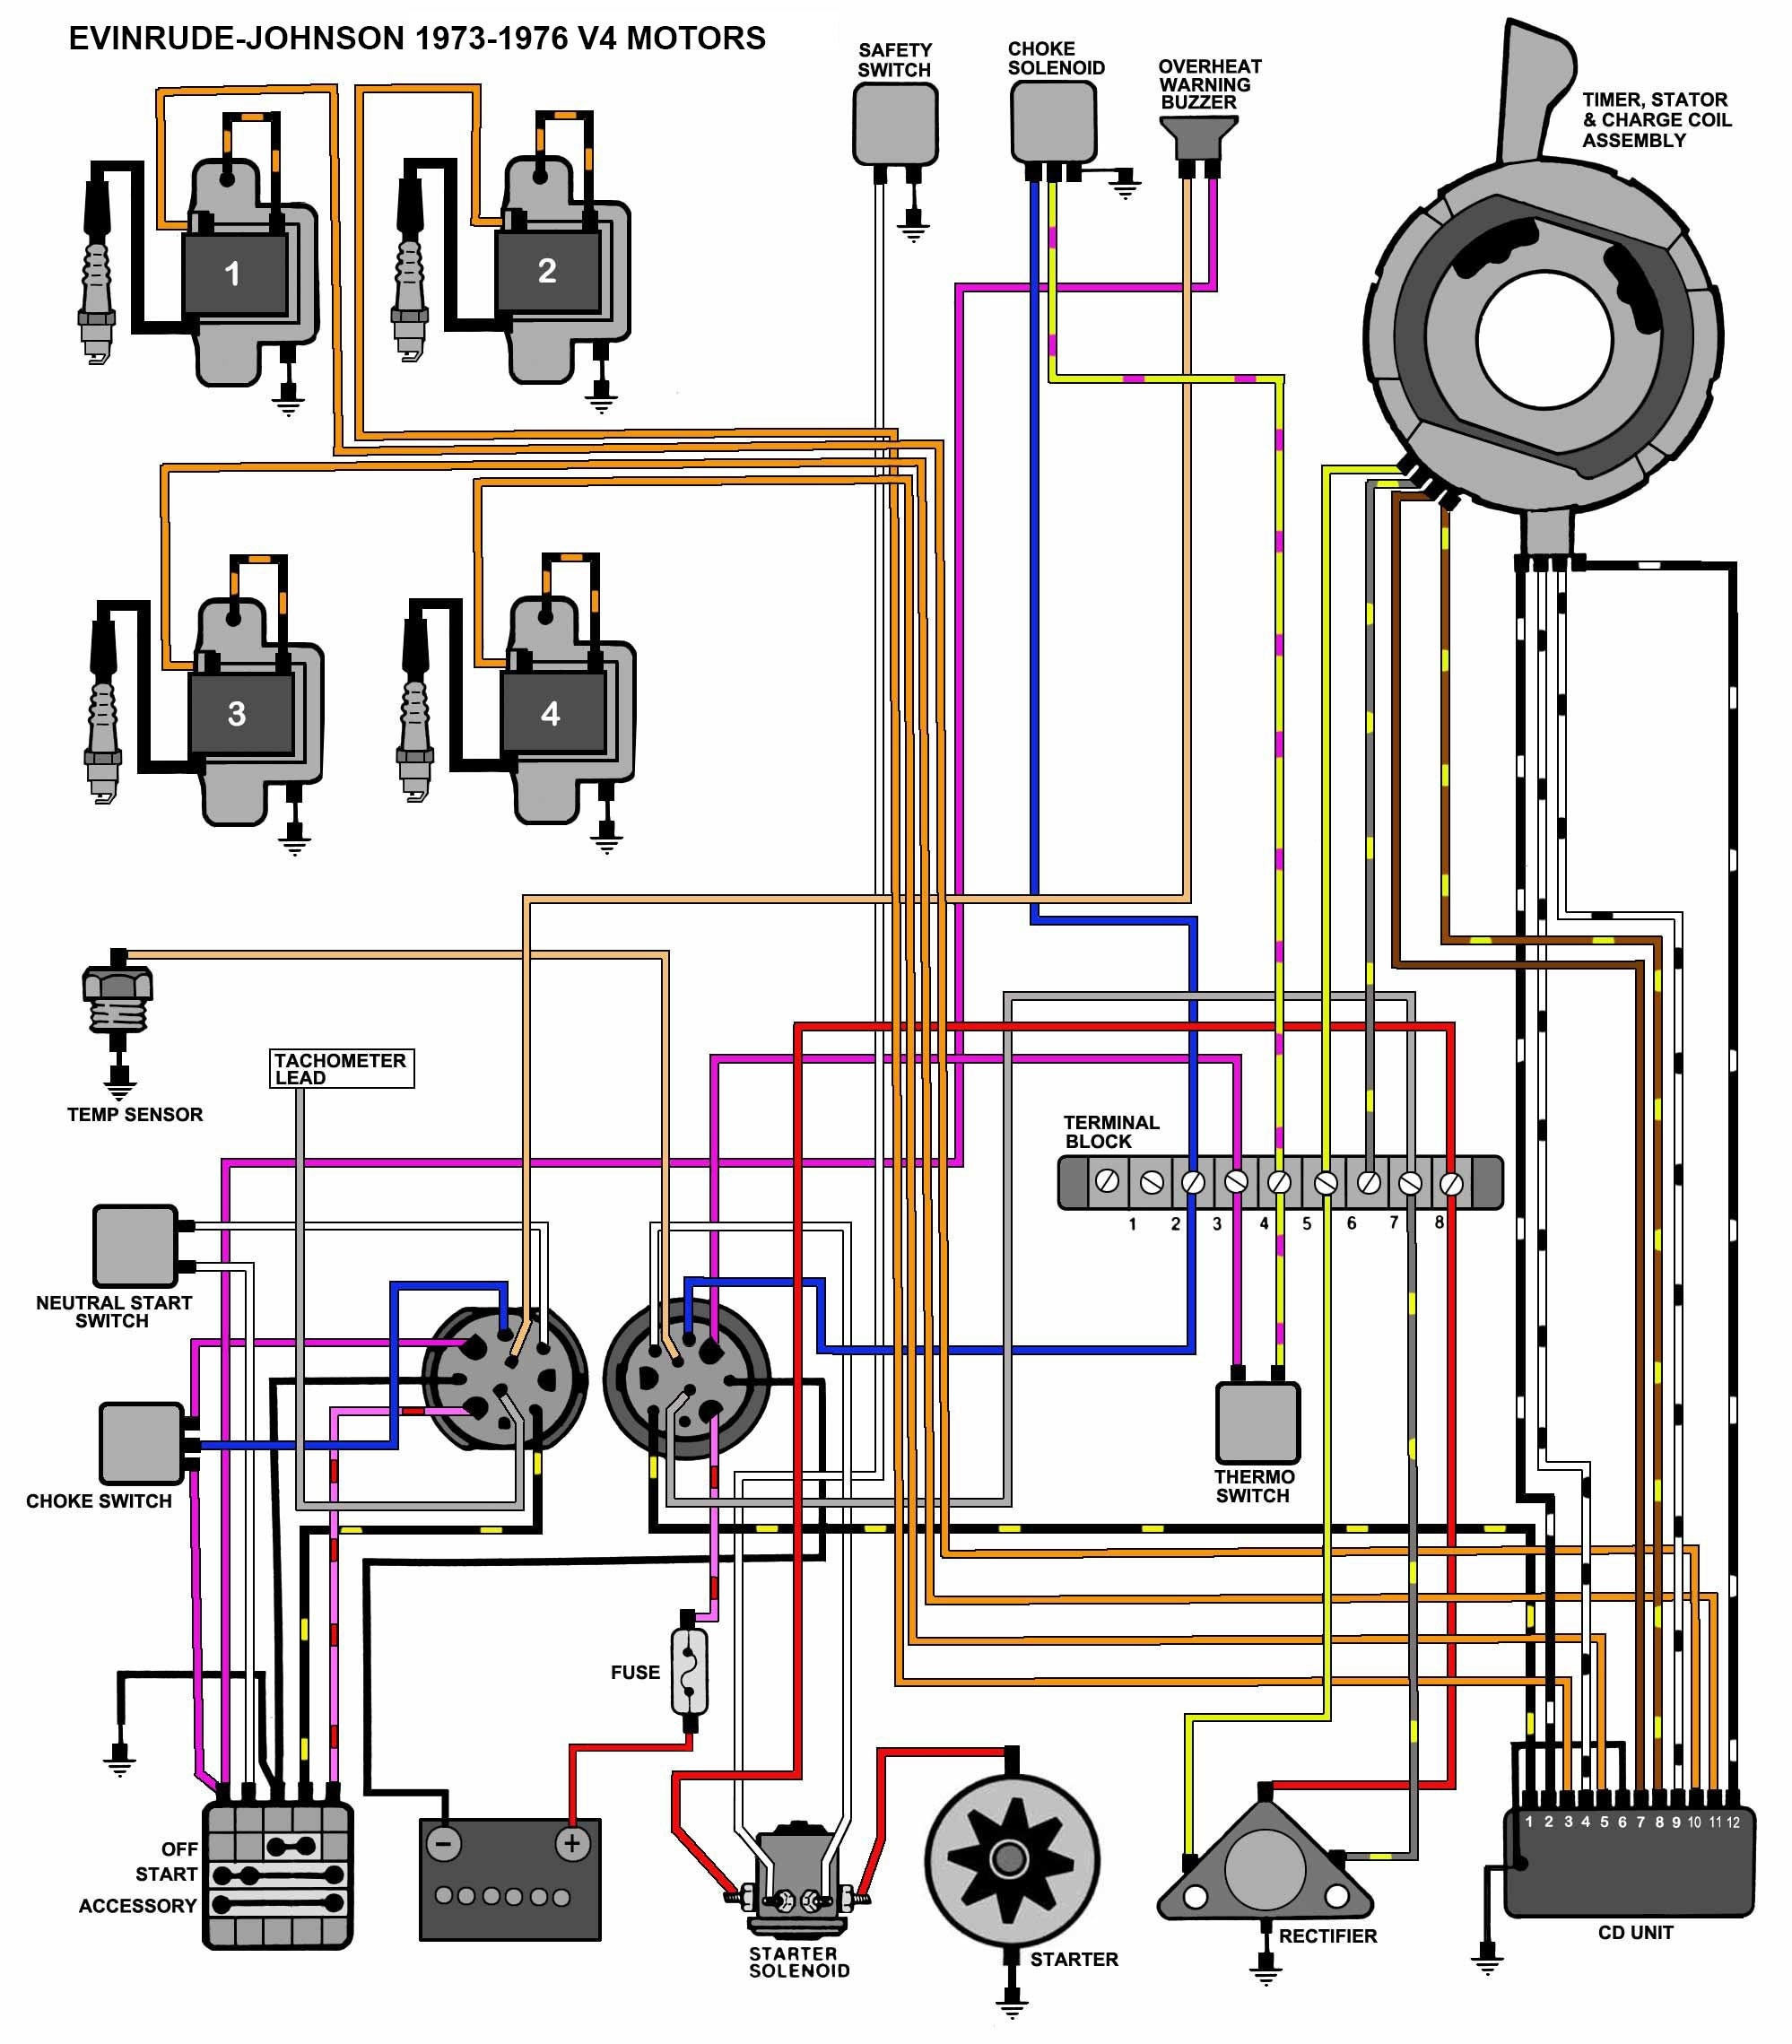 wiring diagram for a mercury outboard ignition switch wiring diagram for a mercury outboard